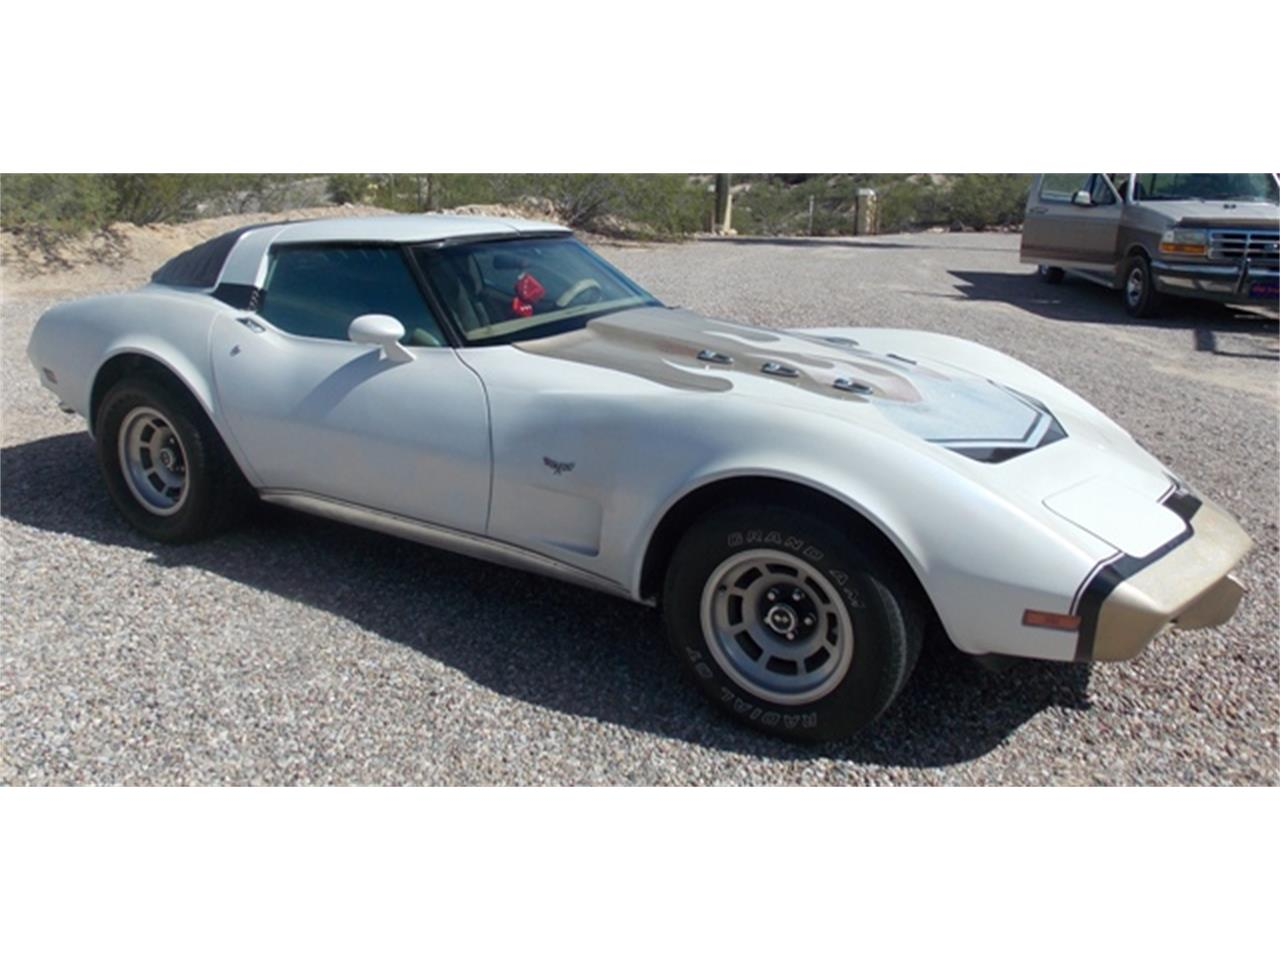 Large Picture of '79 Corvette located in AZ - Arizona - $9,000.00 Offered by Old Iron AZ LLC - QW3D